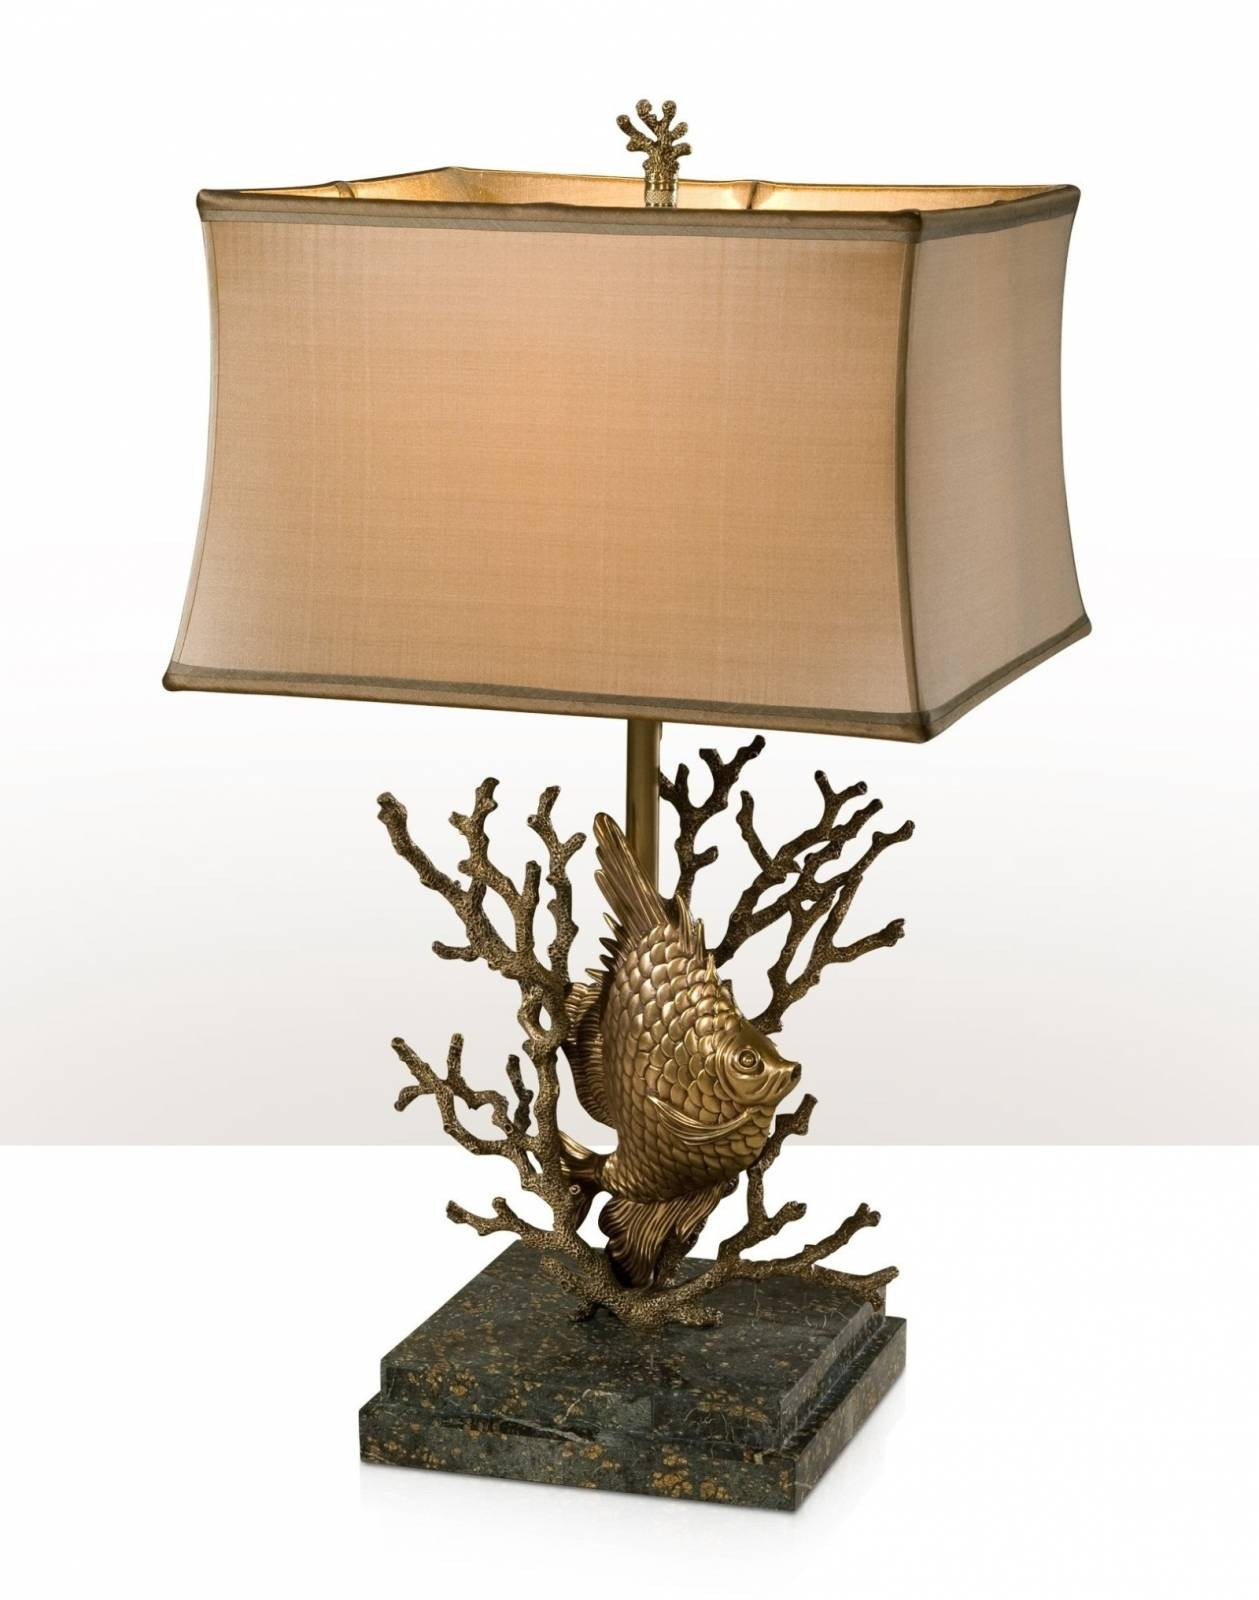 Table lamp with the base of a fish swimming in coral